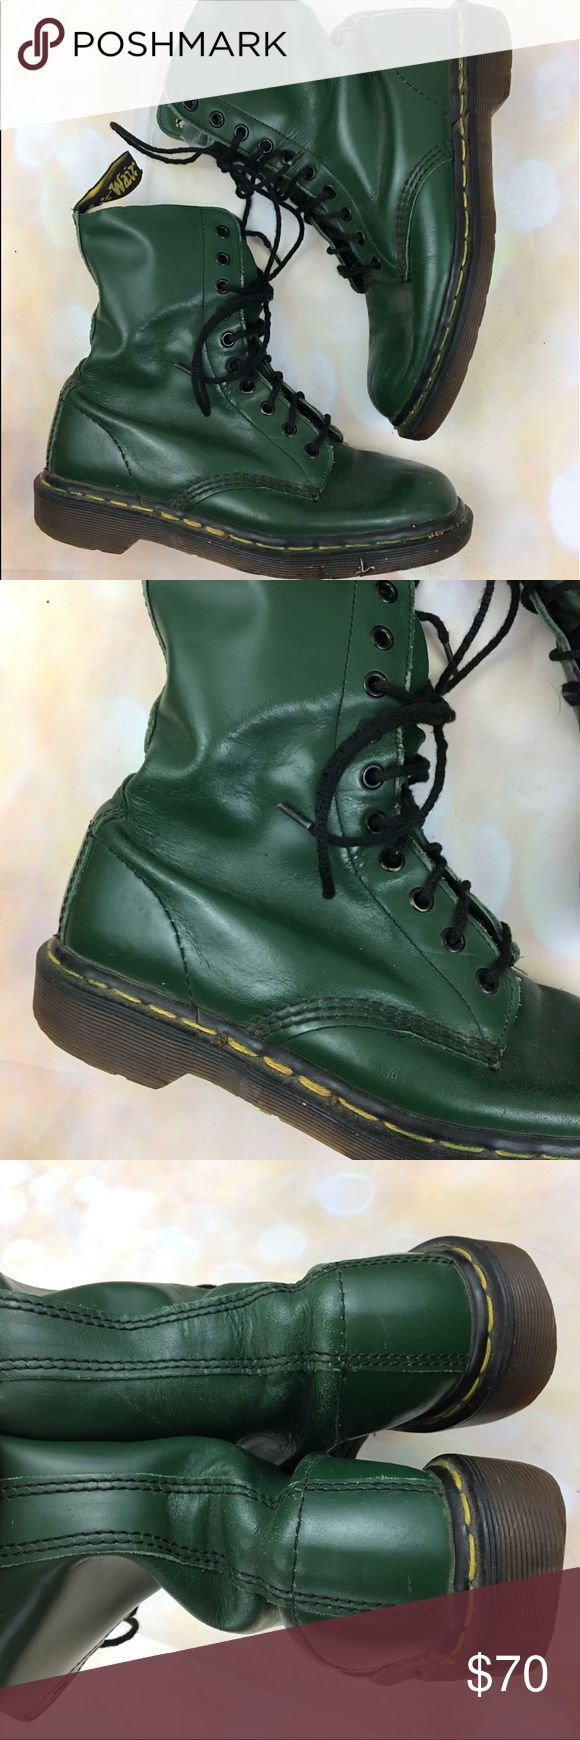 Doc Martens vintage forest green leather boots Good pre owned condition. Have some wear and crinkles in leather Dr. Martens Shoes